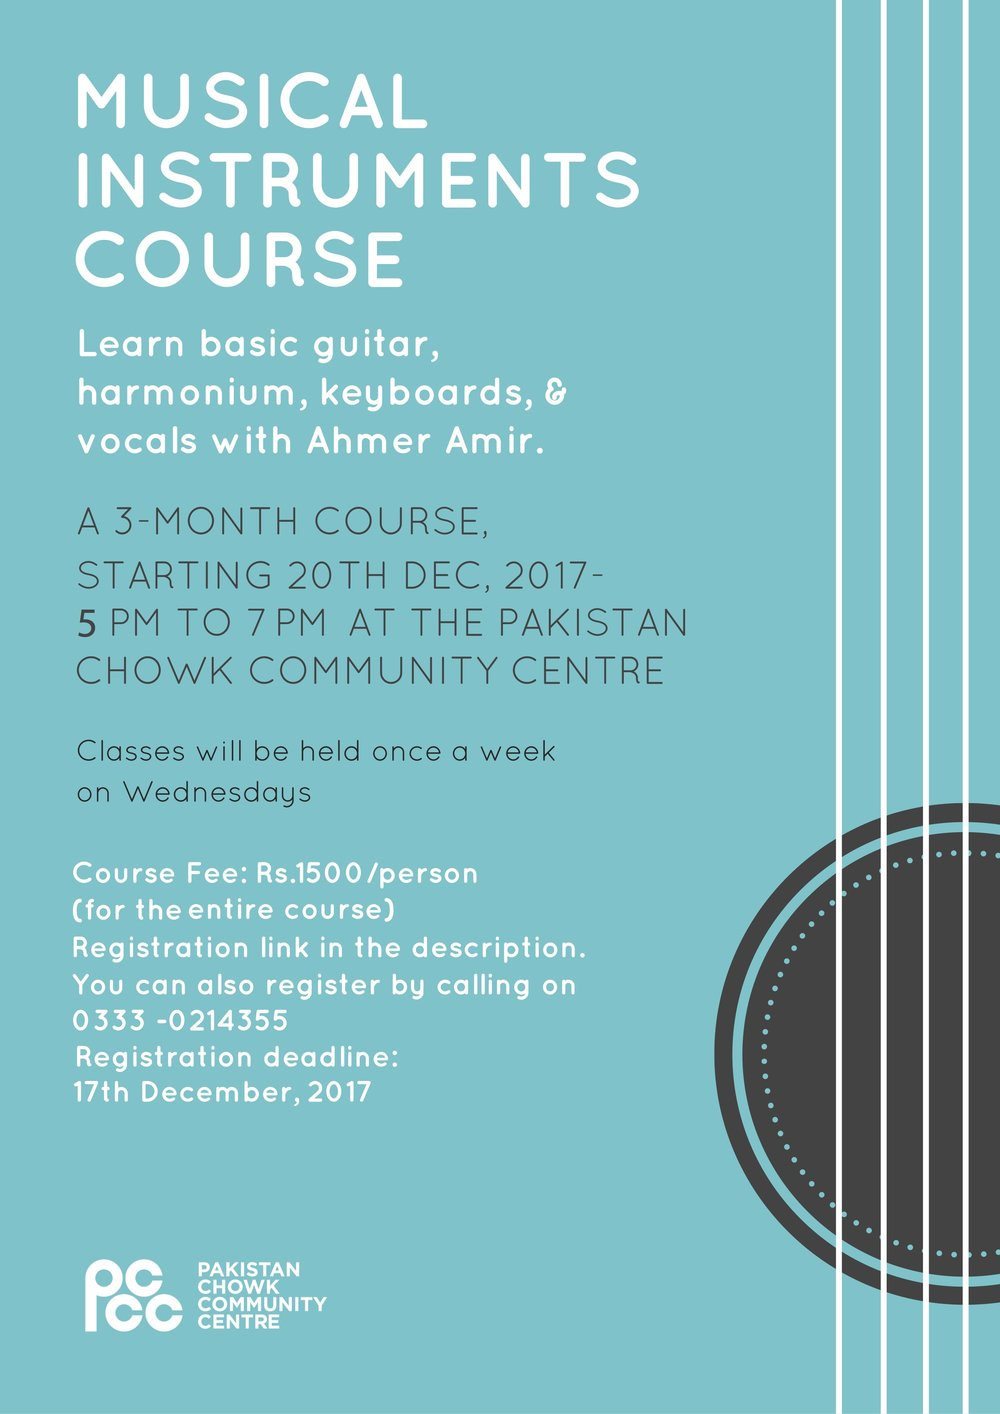 PCCC presents, A chance to learn musical instruments with Ahmer Amir!  About the teacher: Ahmer Amir belongs to the Baray Amanat Ali Khan Sahab's gharana. He has graduated from Arts Council Karachi in Musicology, & currently teaches musical instruments & vocals at CAPA (academy of performing arts).  Course duration: 3 months Course timetable: Starting 20th December, 2017, Every Wednesday, from 5:00pm-7:00pm Course Venue: Pakistan Chowk Community Centre Course fee: 1500/person  Course Description: Over the span of three months, the students will be able to learn how to play the guitar, keyboards, & harmonium. They will also get training in vocals.  Registration Link:   https://docs.google.com/forms/d/e/1FAIpQLScVdFcTyg8M6MEvcPdUl17H6lsLQOYHjNISL1CqXsWjBUI0Ig/viewform   (Deadline for resgistration-17th December, 2017) Limited spots available. Registration on first come first serve basis.